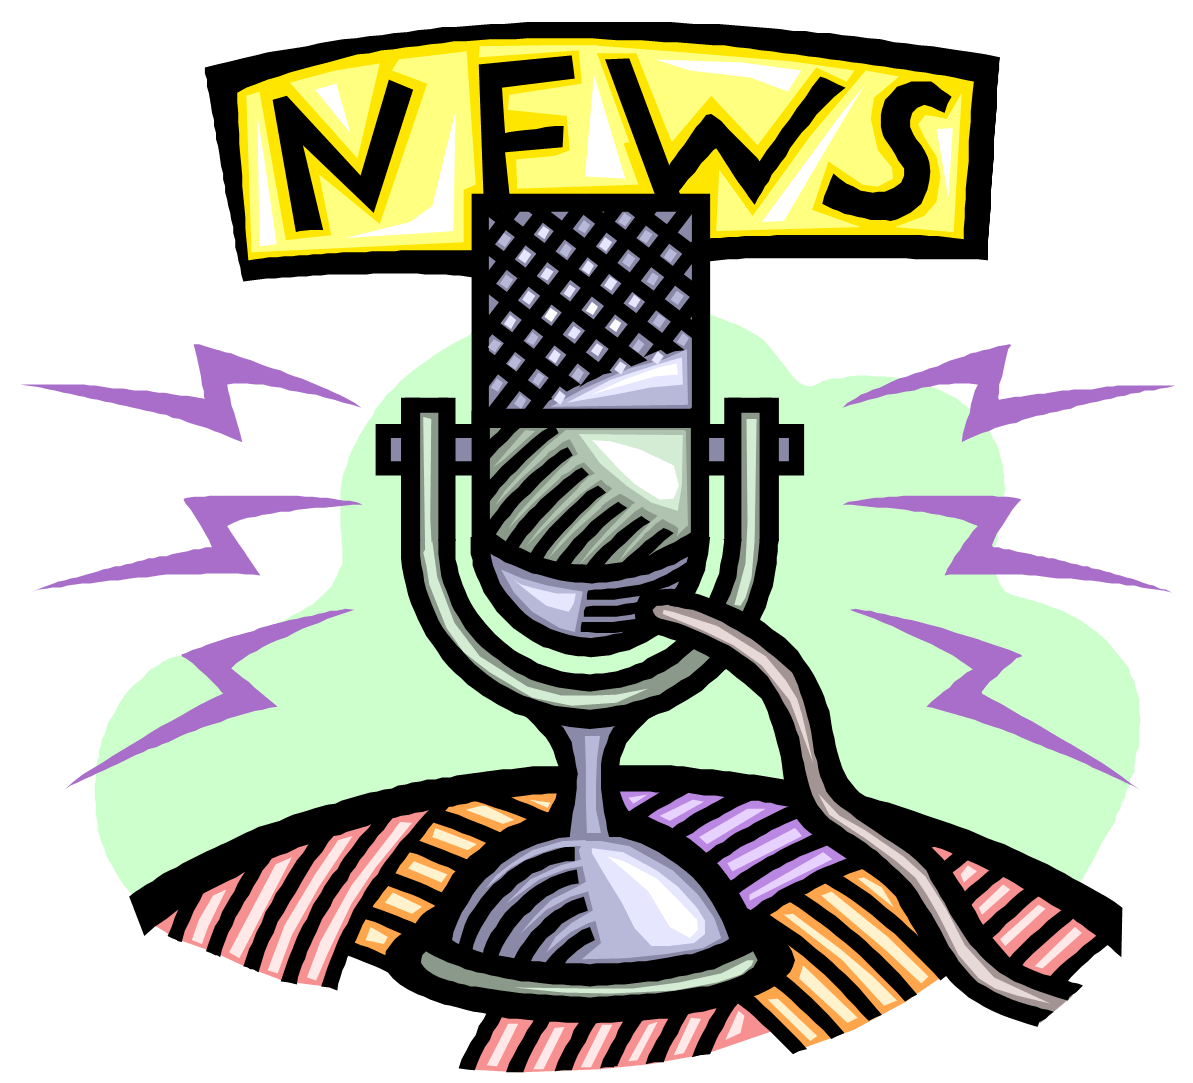 News clipart weekend news, News weekend news Transparent FREE for download  on WebStockReview 2020